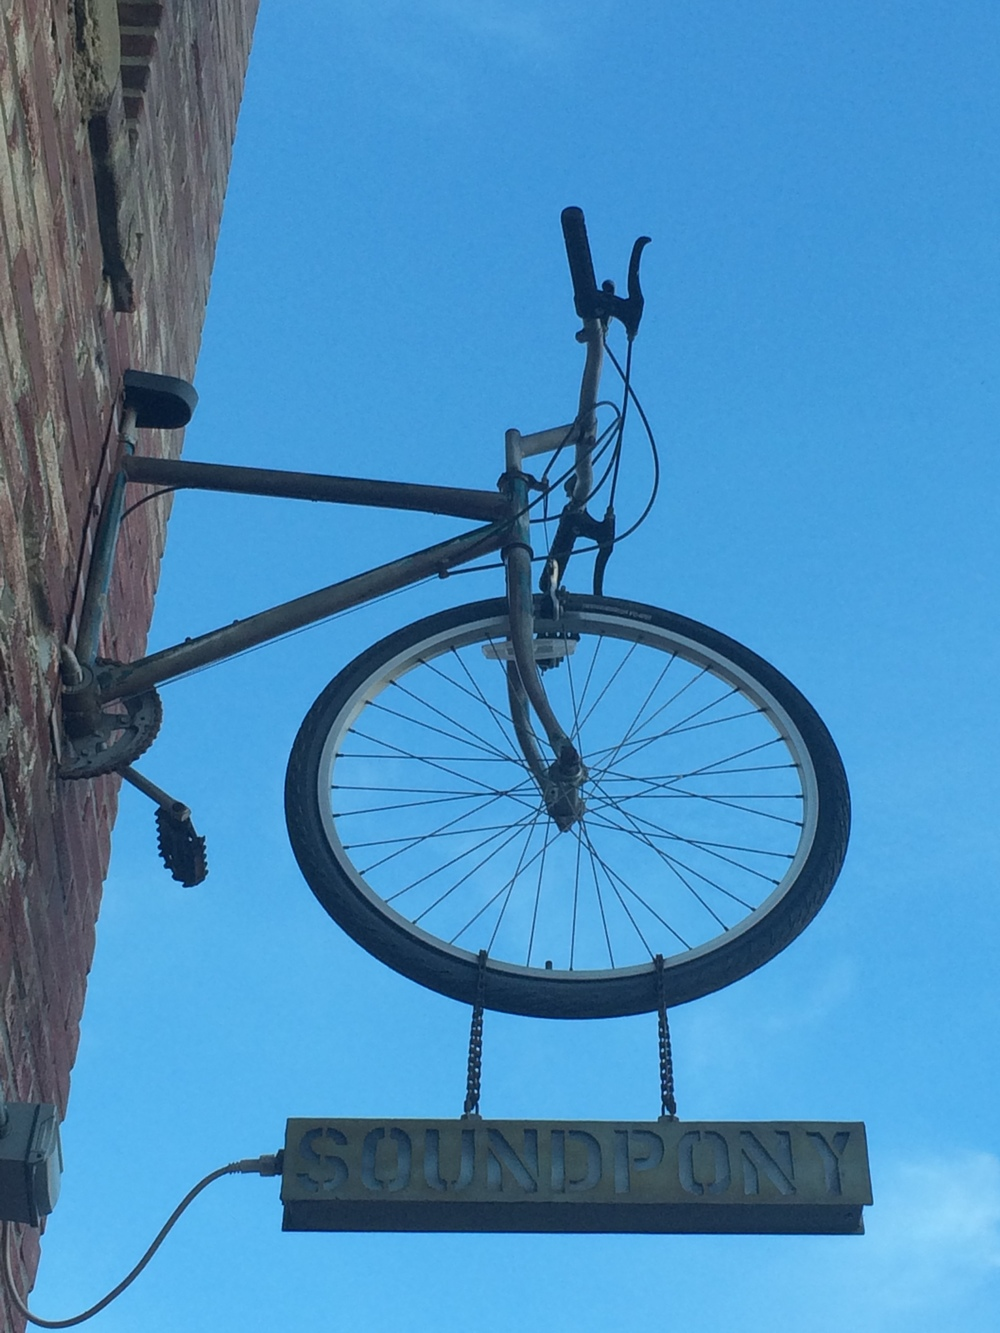 America's best bicycle-themed bar